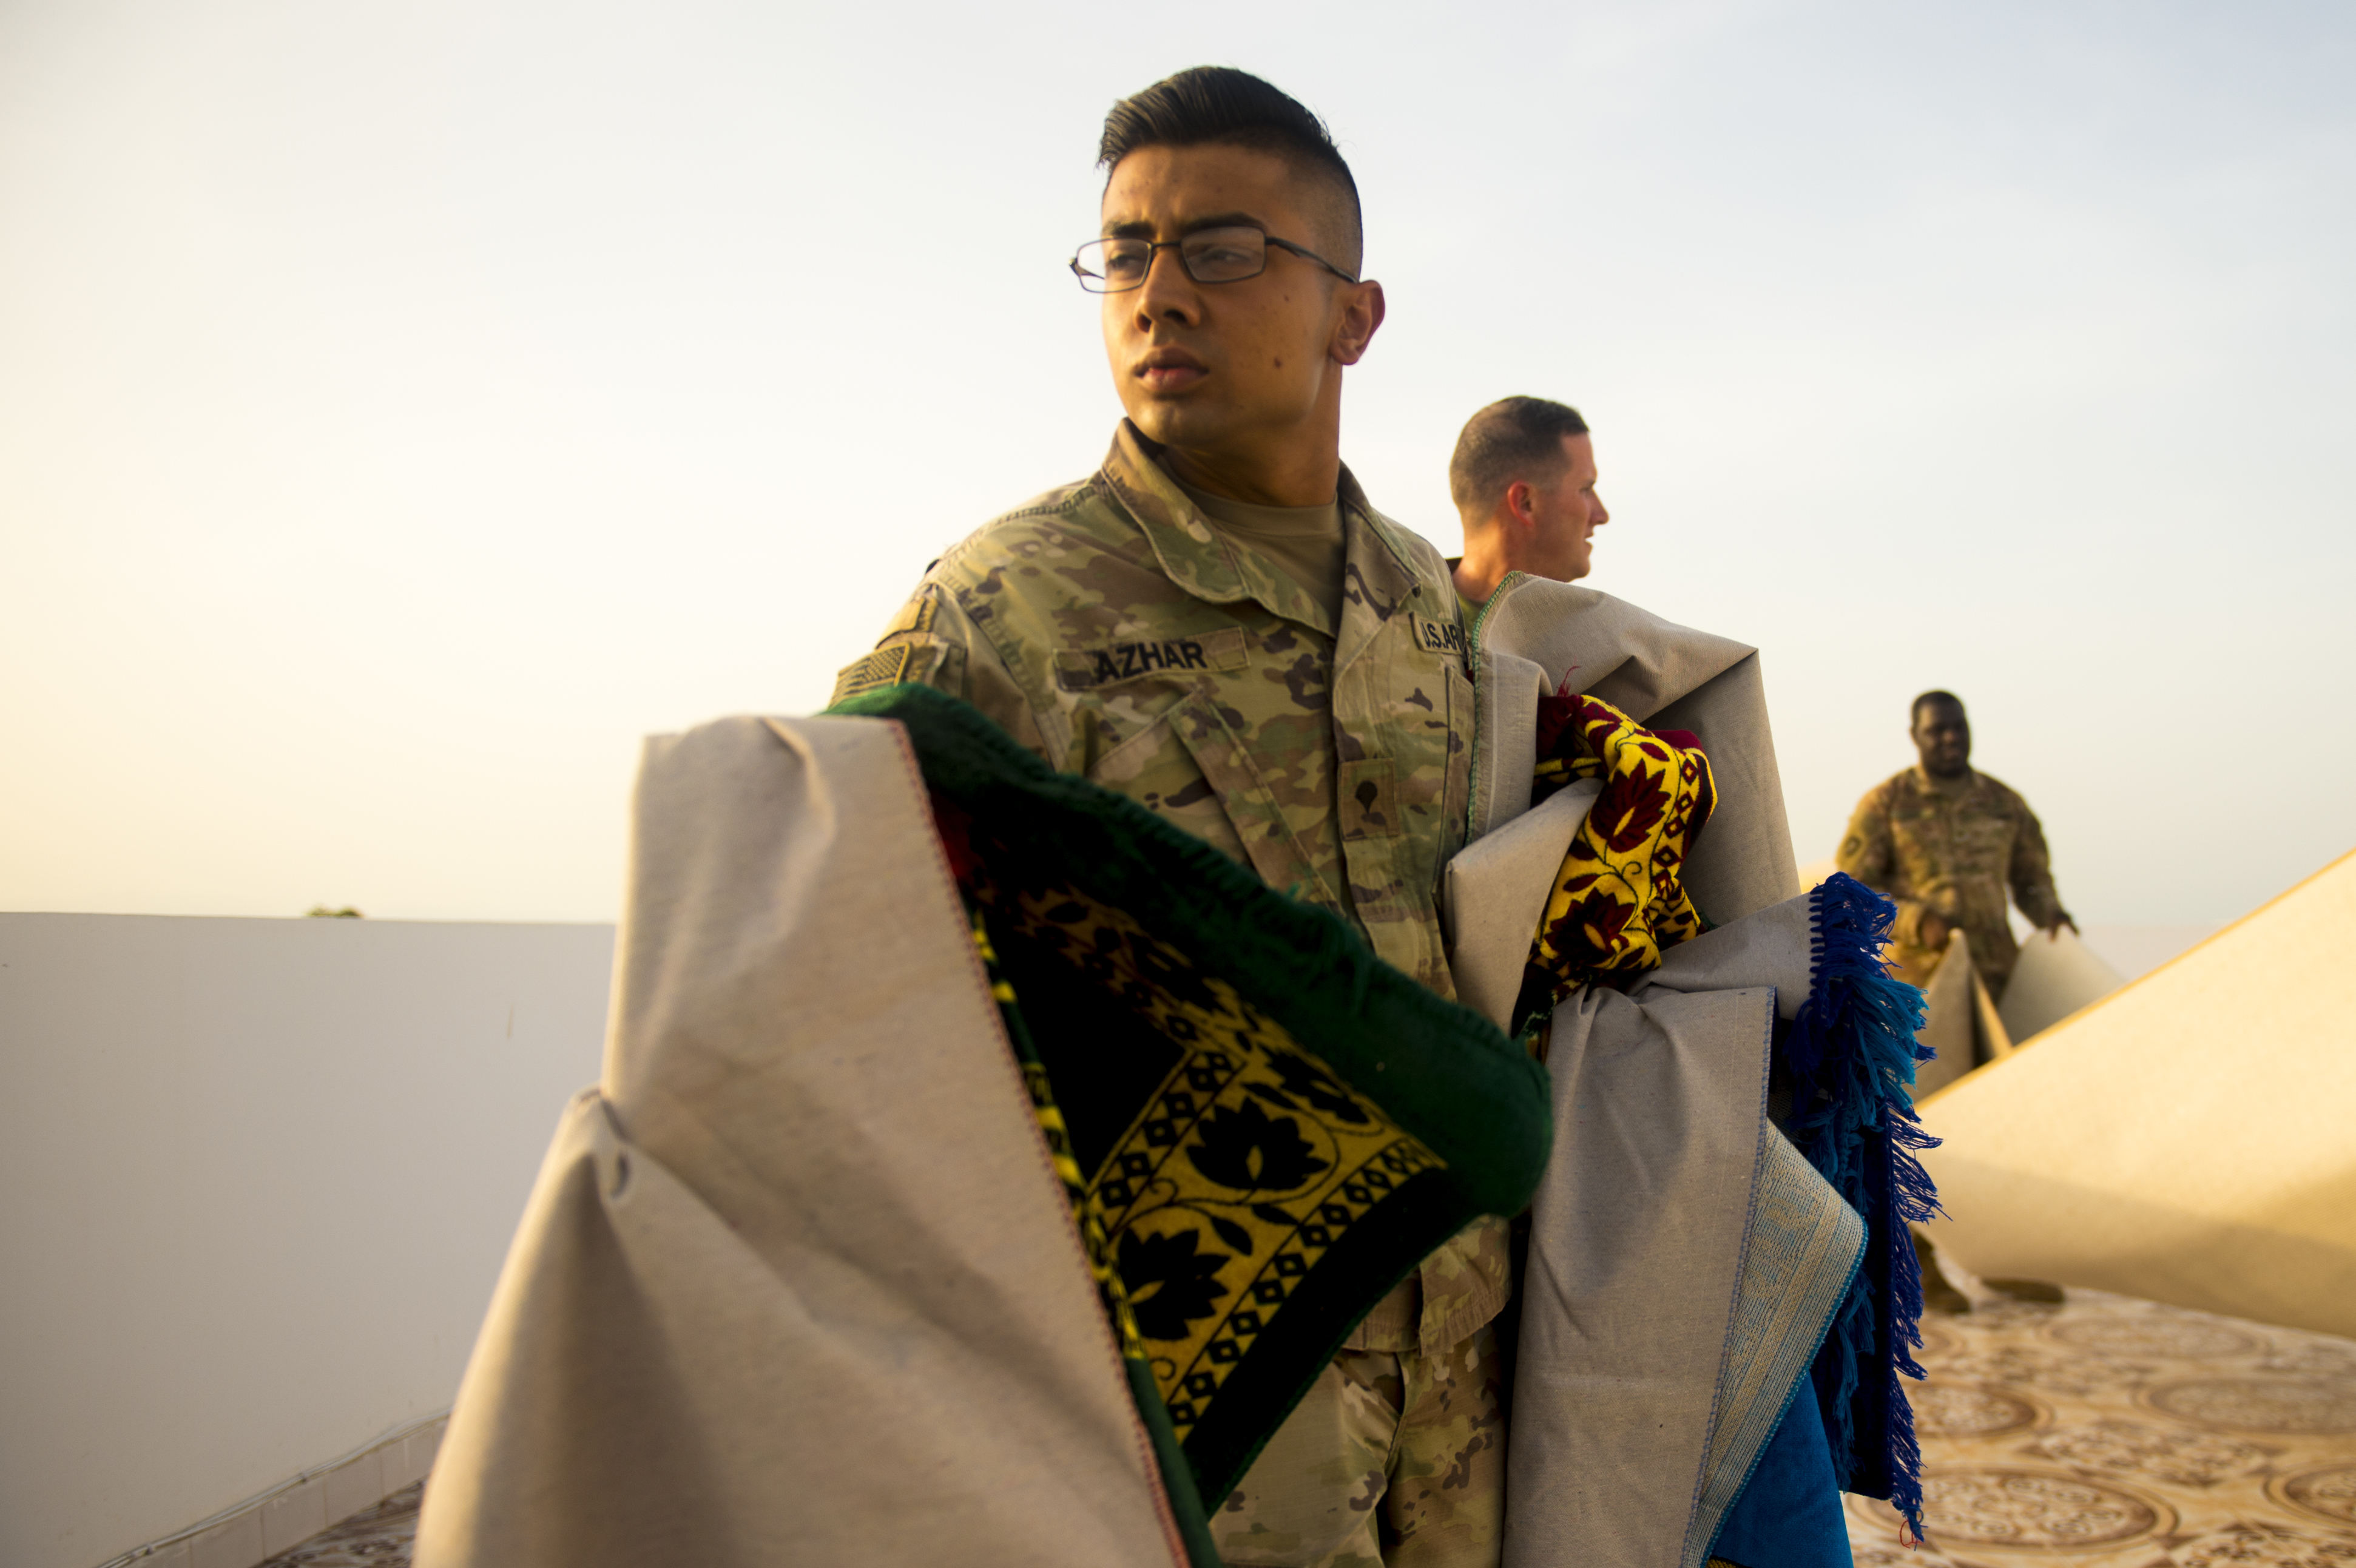 U.S. Army Spc. Ahmed Azhar, an infantryman from the 10th Mountain Division, prepares a prayer rug in during an Iftar celebration at the U.S. Ambassador to the Republic of DJibouti's house in Djibouti, May 21, 2018. The U.S. Ambassador to the Republic of Djibouti, Larry André, opened his home to celebrate two Iftars, one run by the Defense Attaché Office for senior Diboutian Military and security leaders, the second for senior government, diplomatic, and business leaders. (U.S. Air Force photo by Senior Airman Scott Jackson)